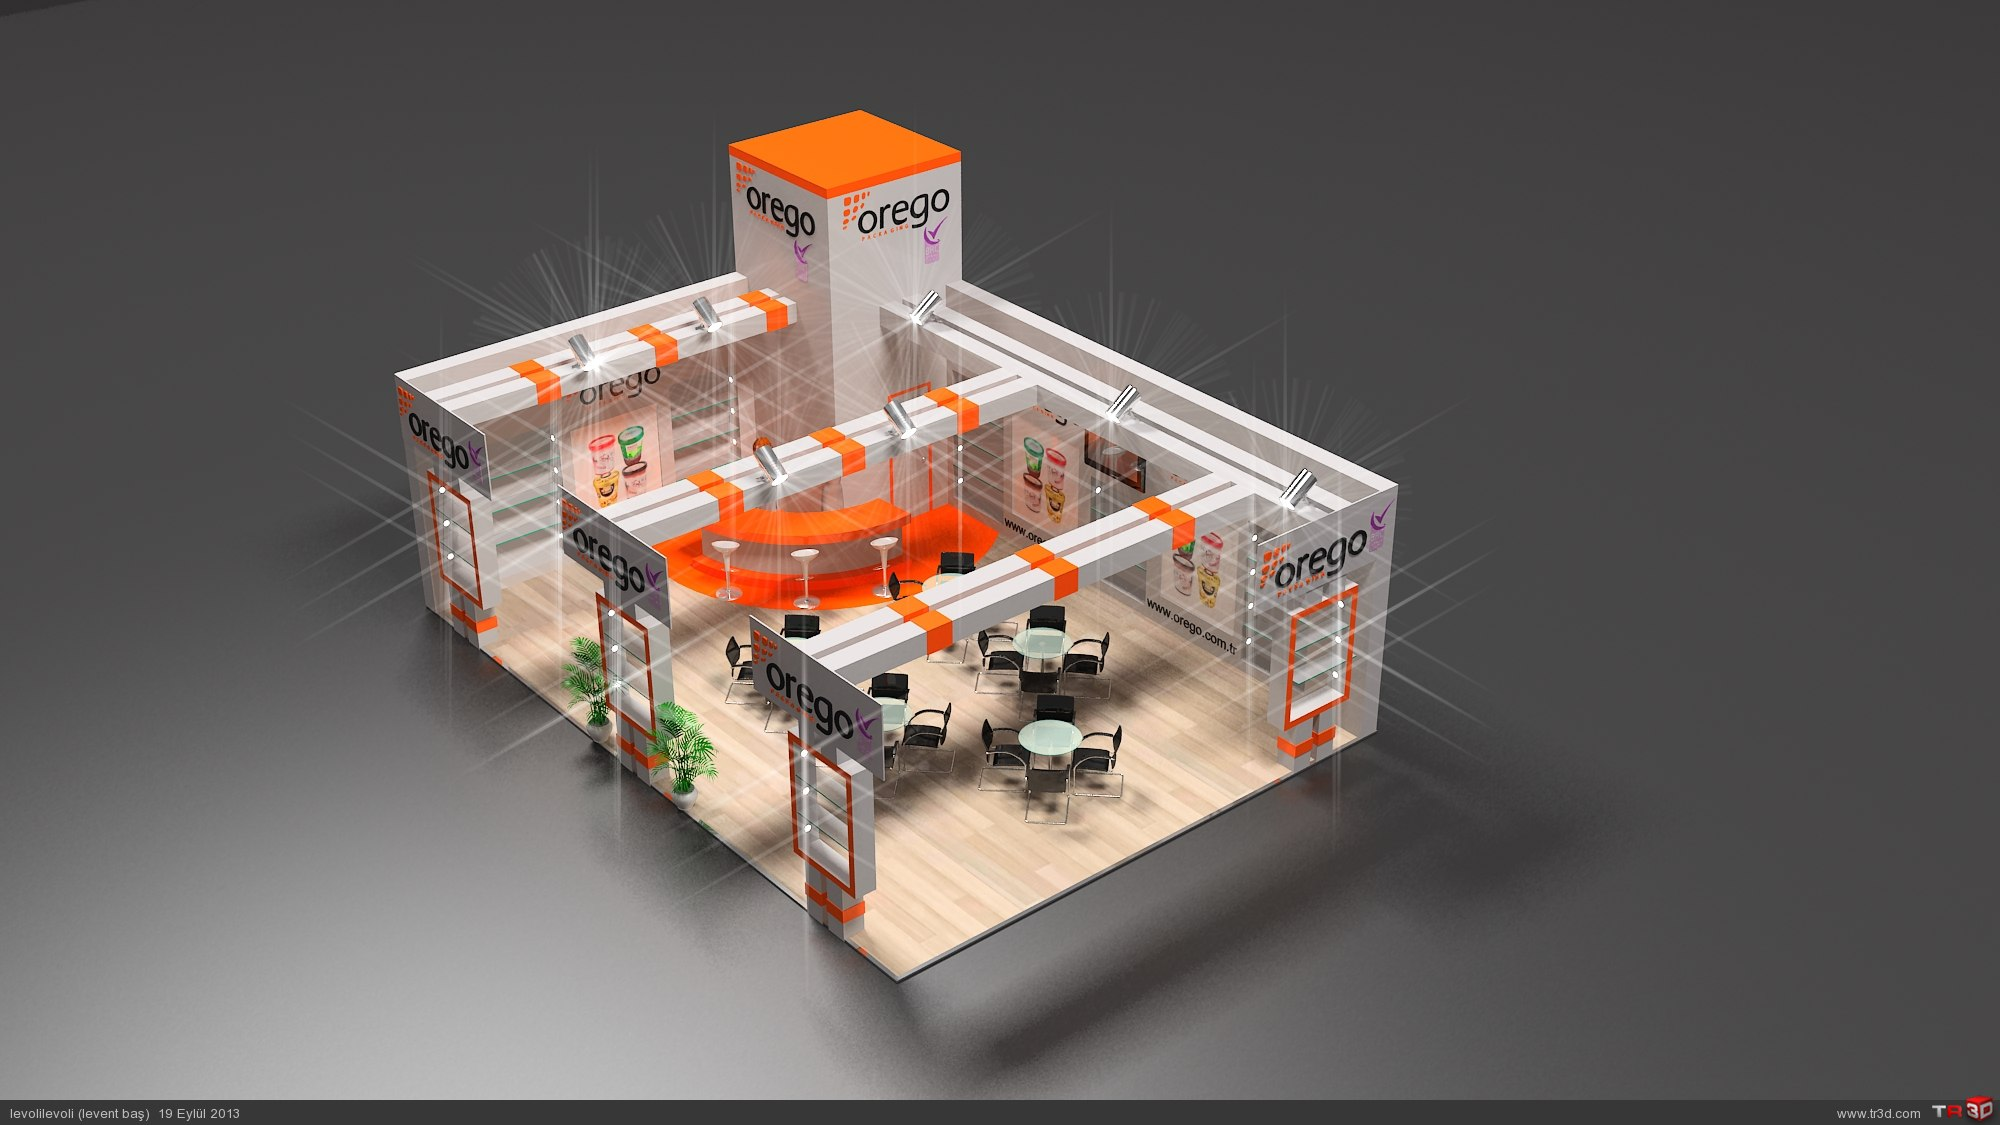 AHŞAP STAND OREGO